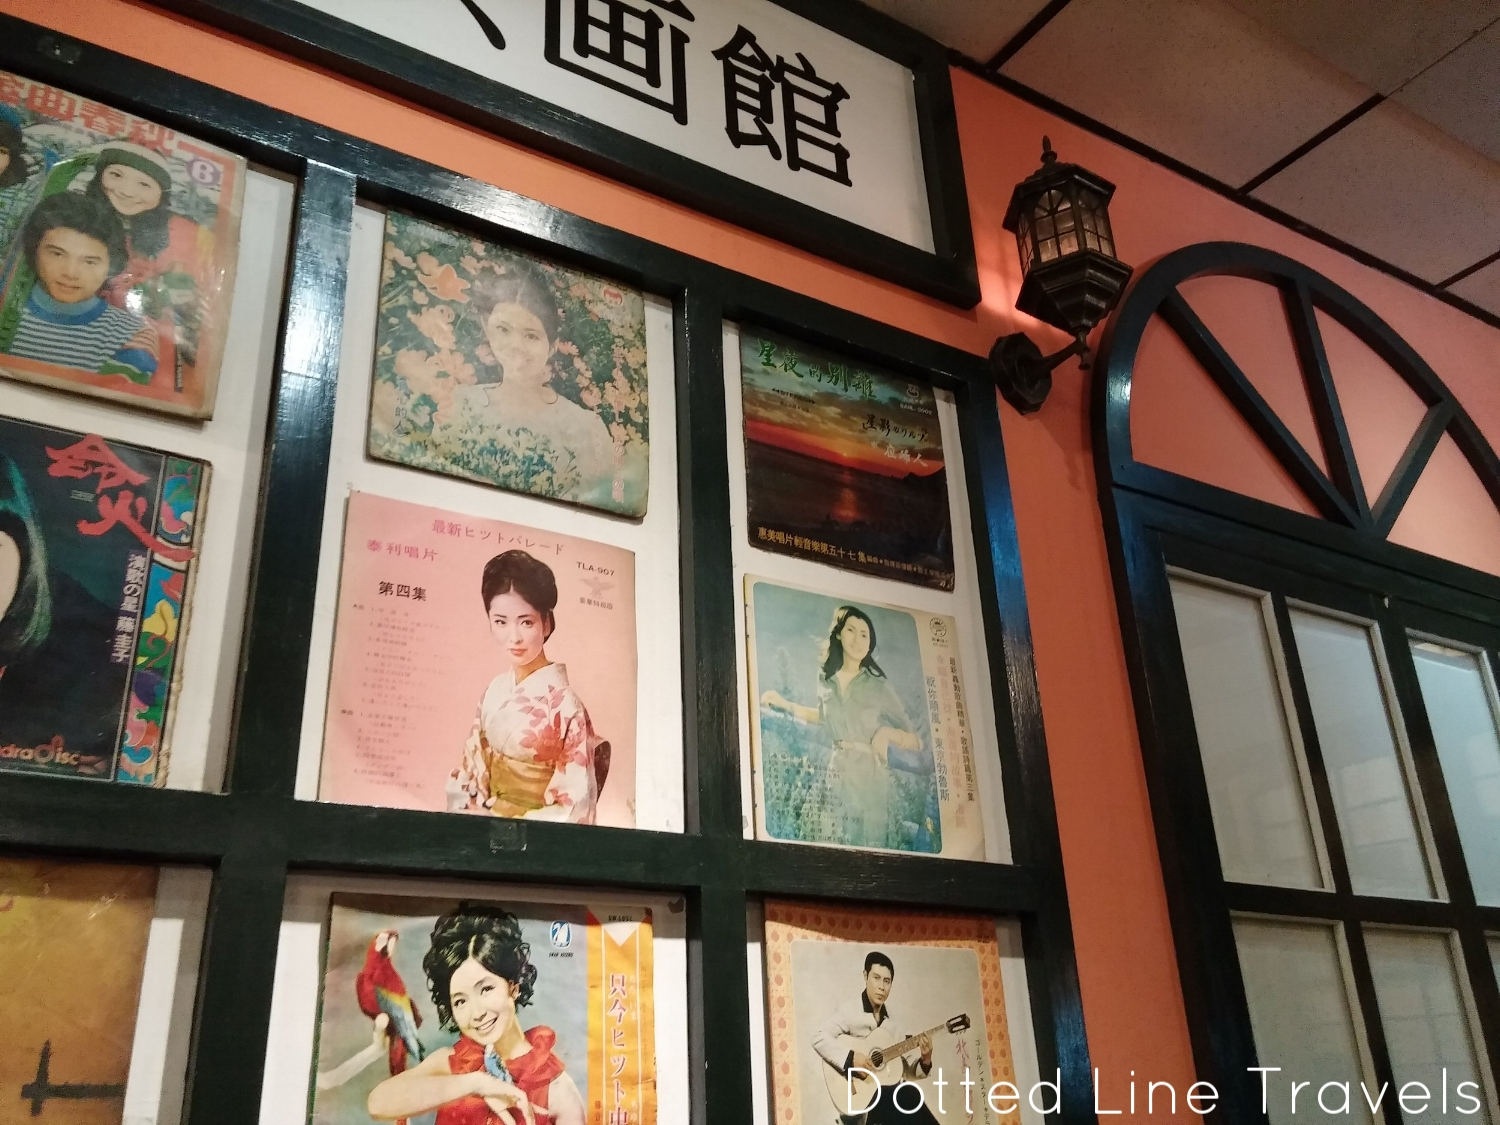 Very cool interior of the restaurant - featuring images of Taiwanese stars from many years ago!